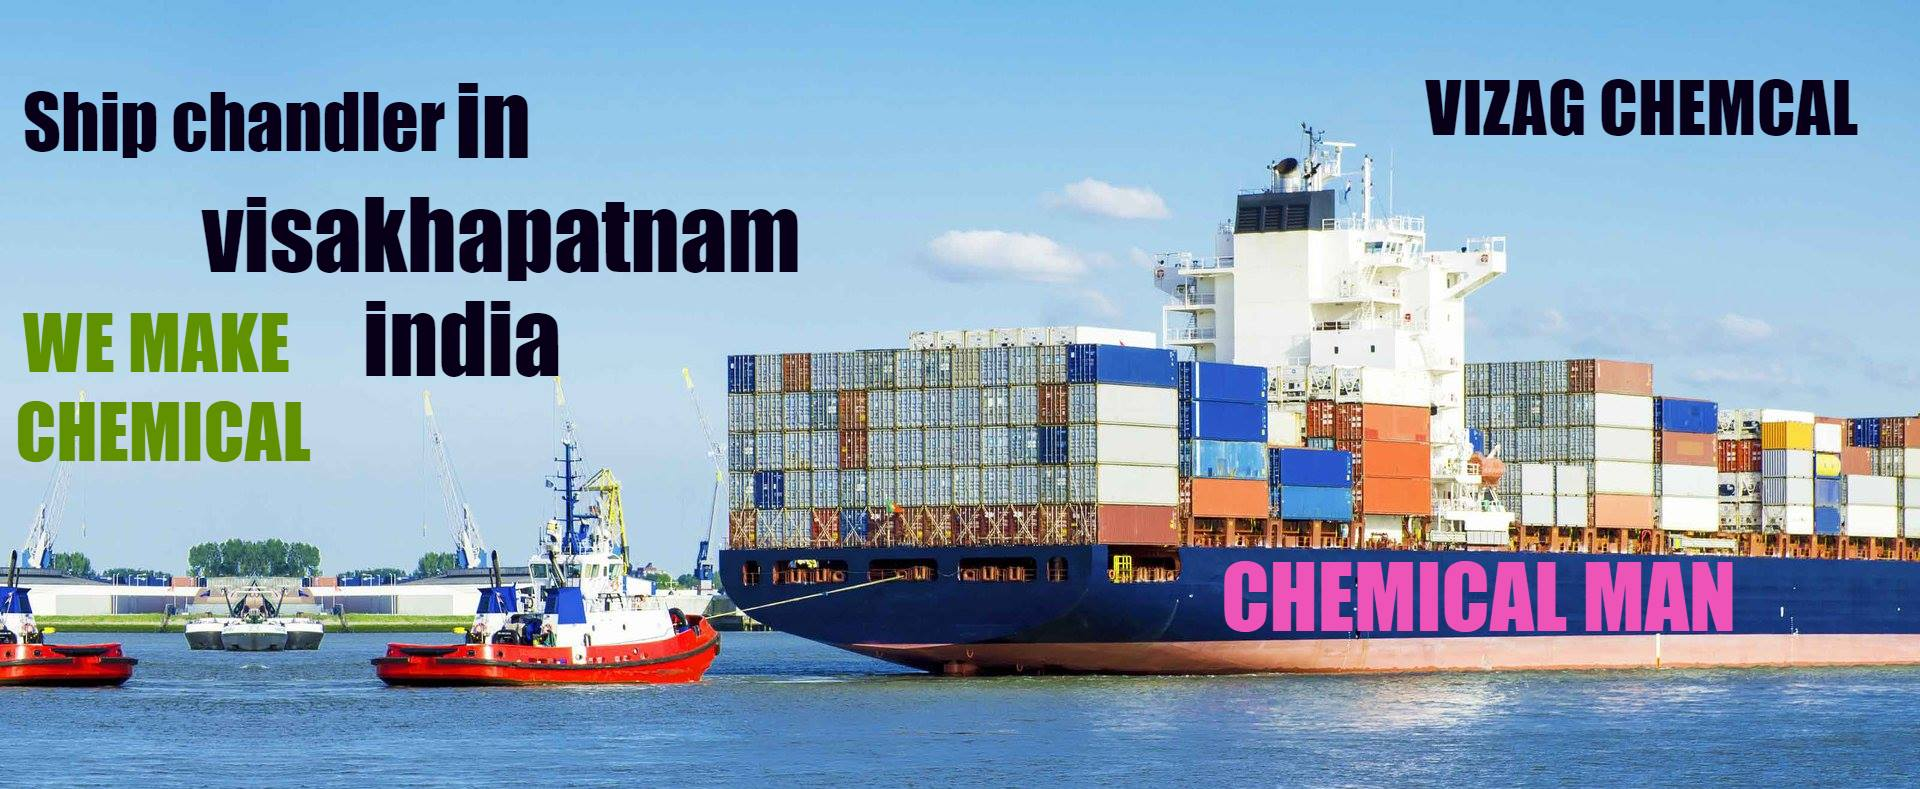 Ship chandler In Visakhapatnam India ifo Chemical Man India